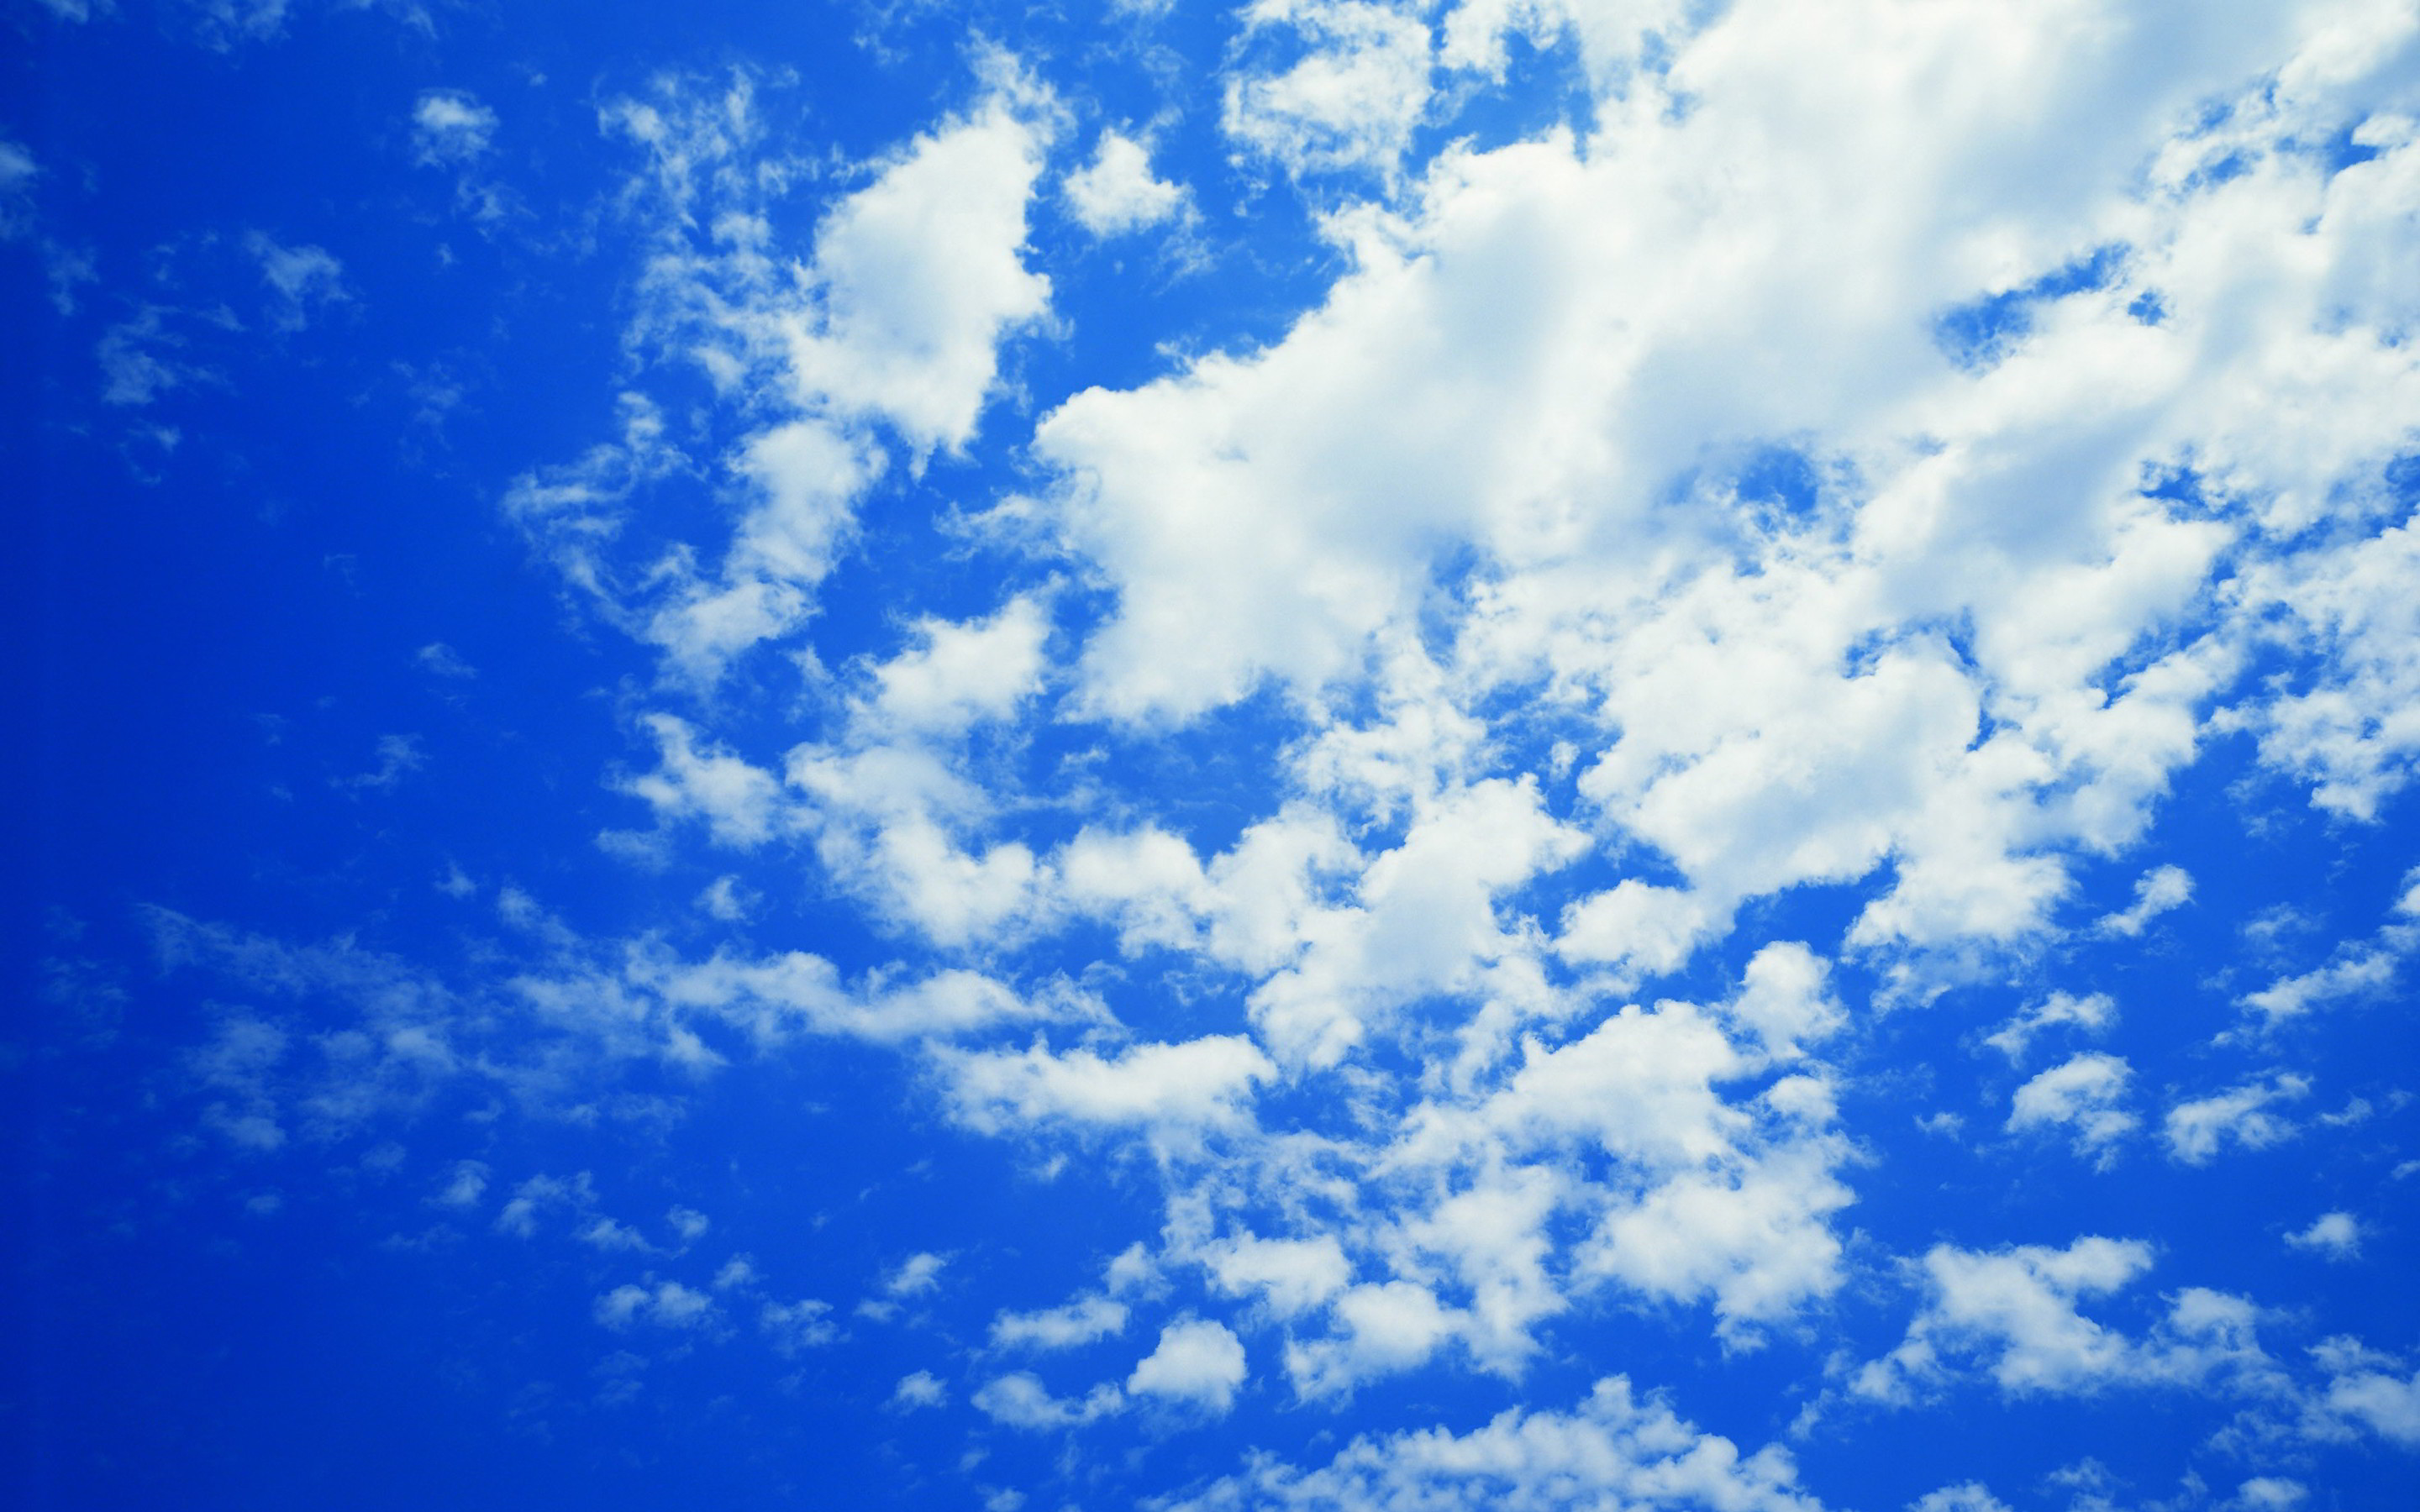 56 Clouds And Blue Skies